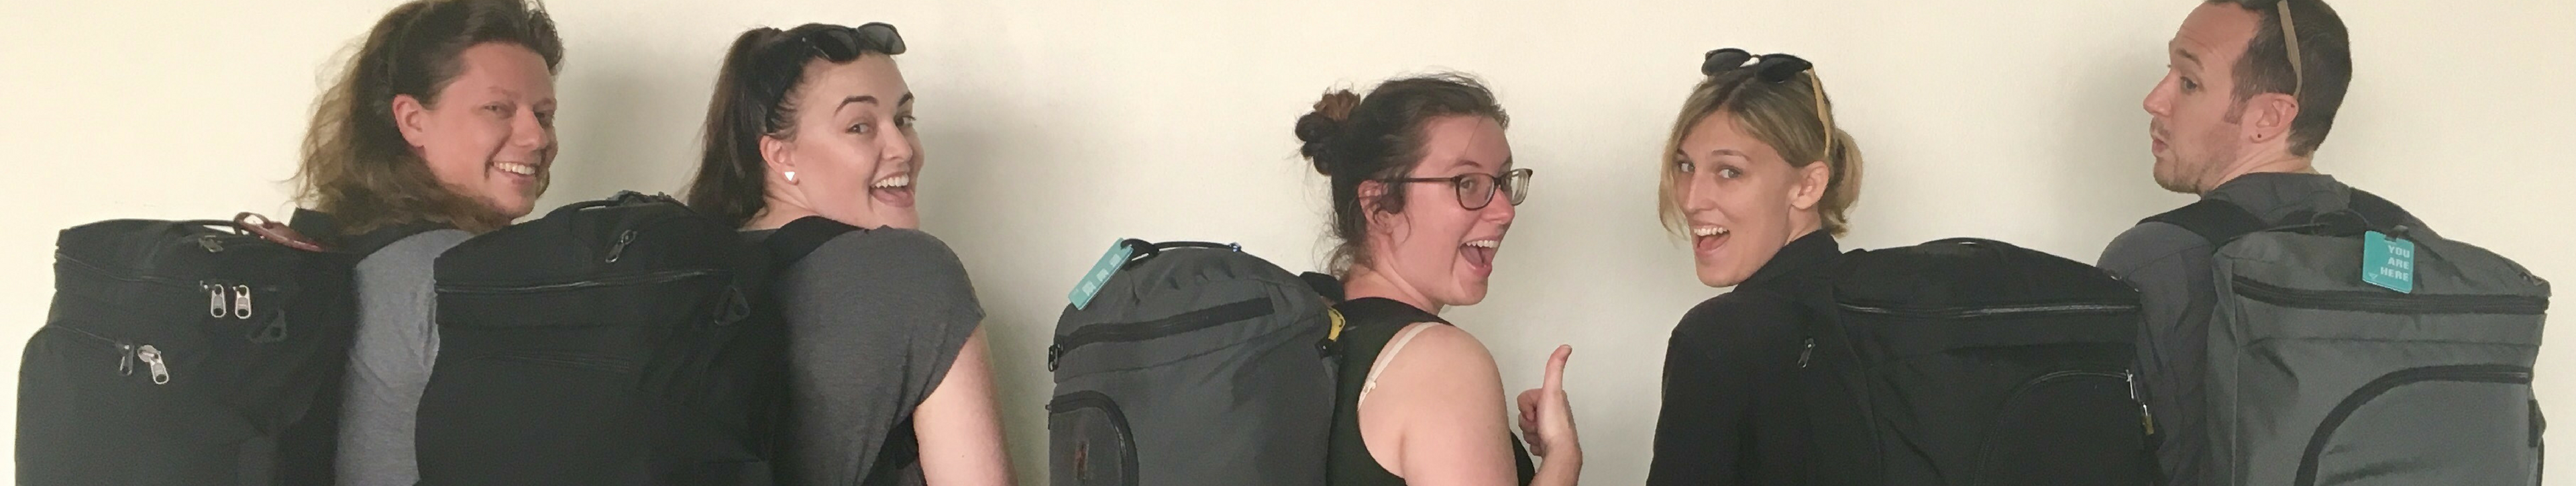 Tom Bihn-ed Up + Ready for Year Two!